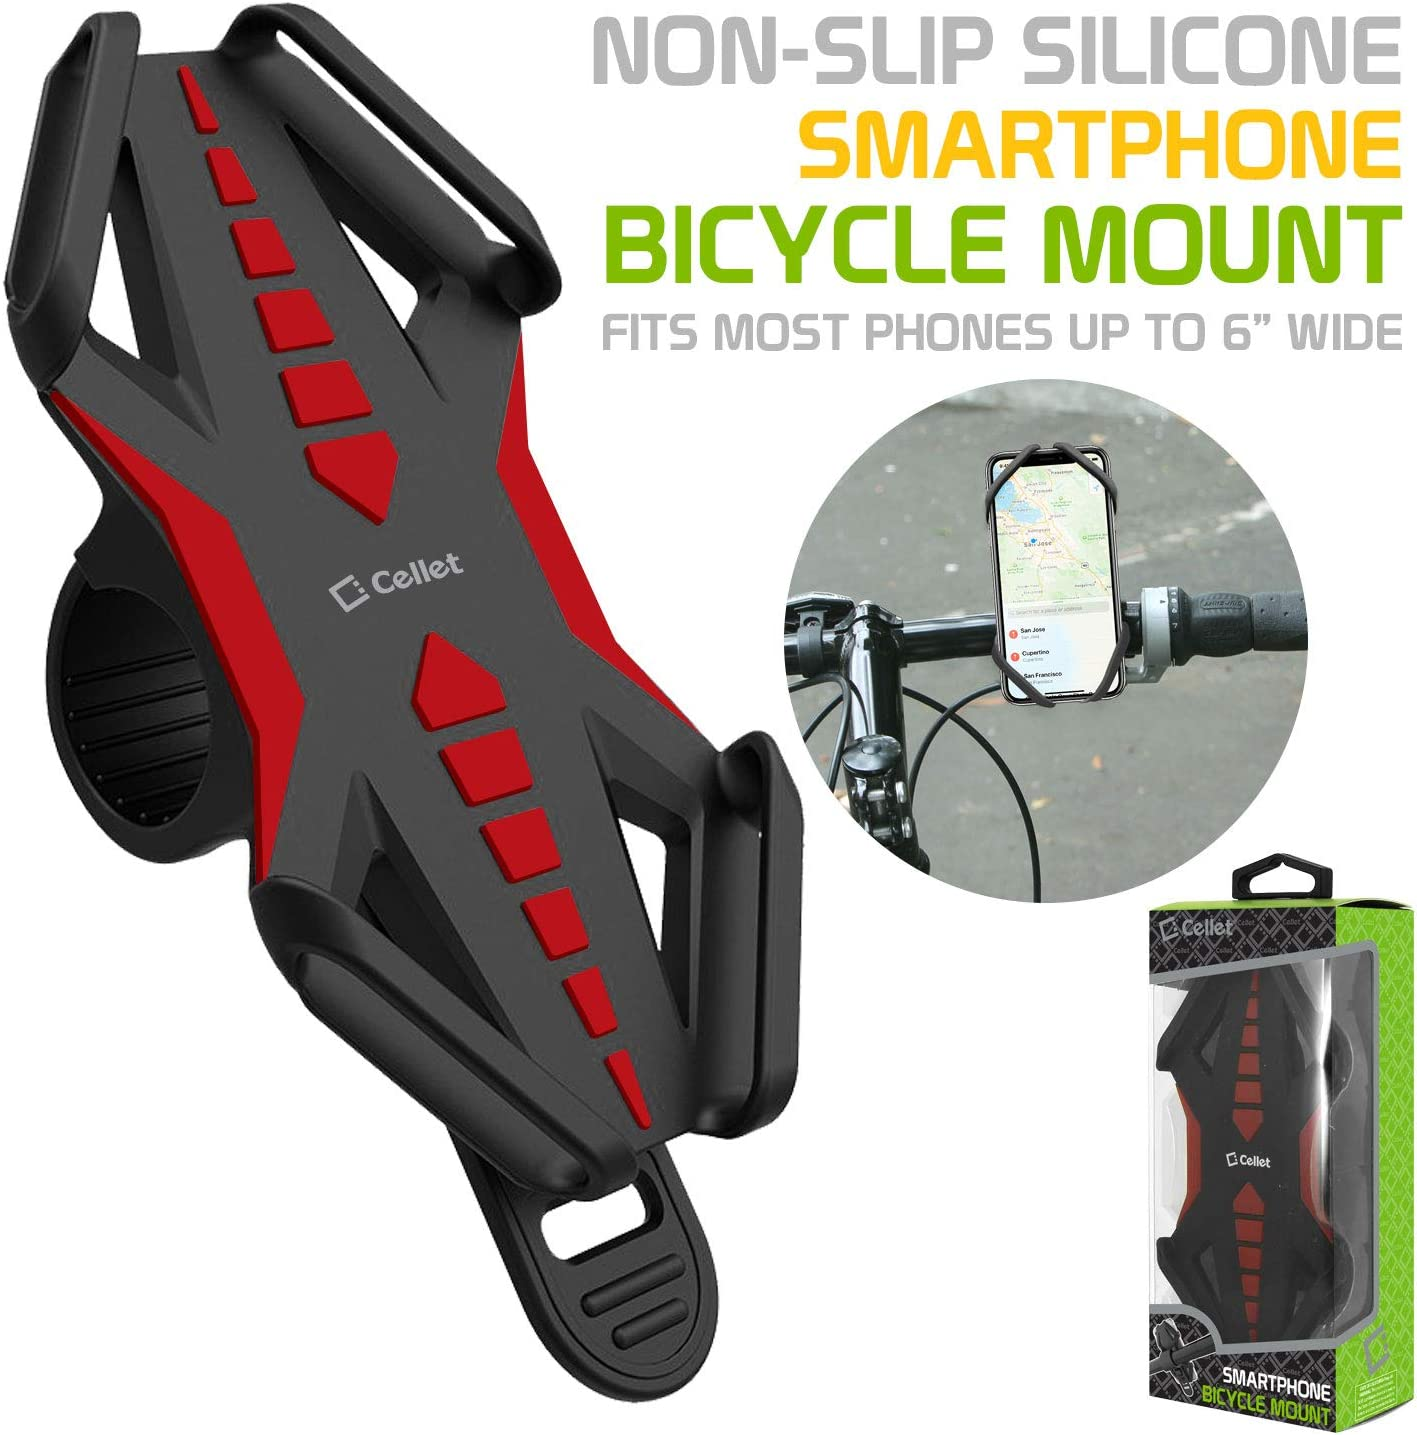 Green Universal Bicycle Holder Mount for Apple iPhone Xs//Max//Xr//X//8//8 Plus Samsung Note 9//8//5 Galaxy S9//S9 Plus//S8//S8 Plus//S7 Motorola Z3 Play//Moto G6//X4//Z2 Force//Z2 Play//Z Droid Bike Phone Mount